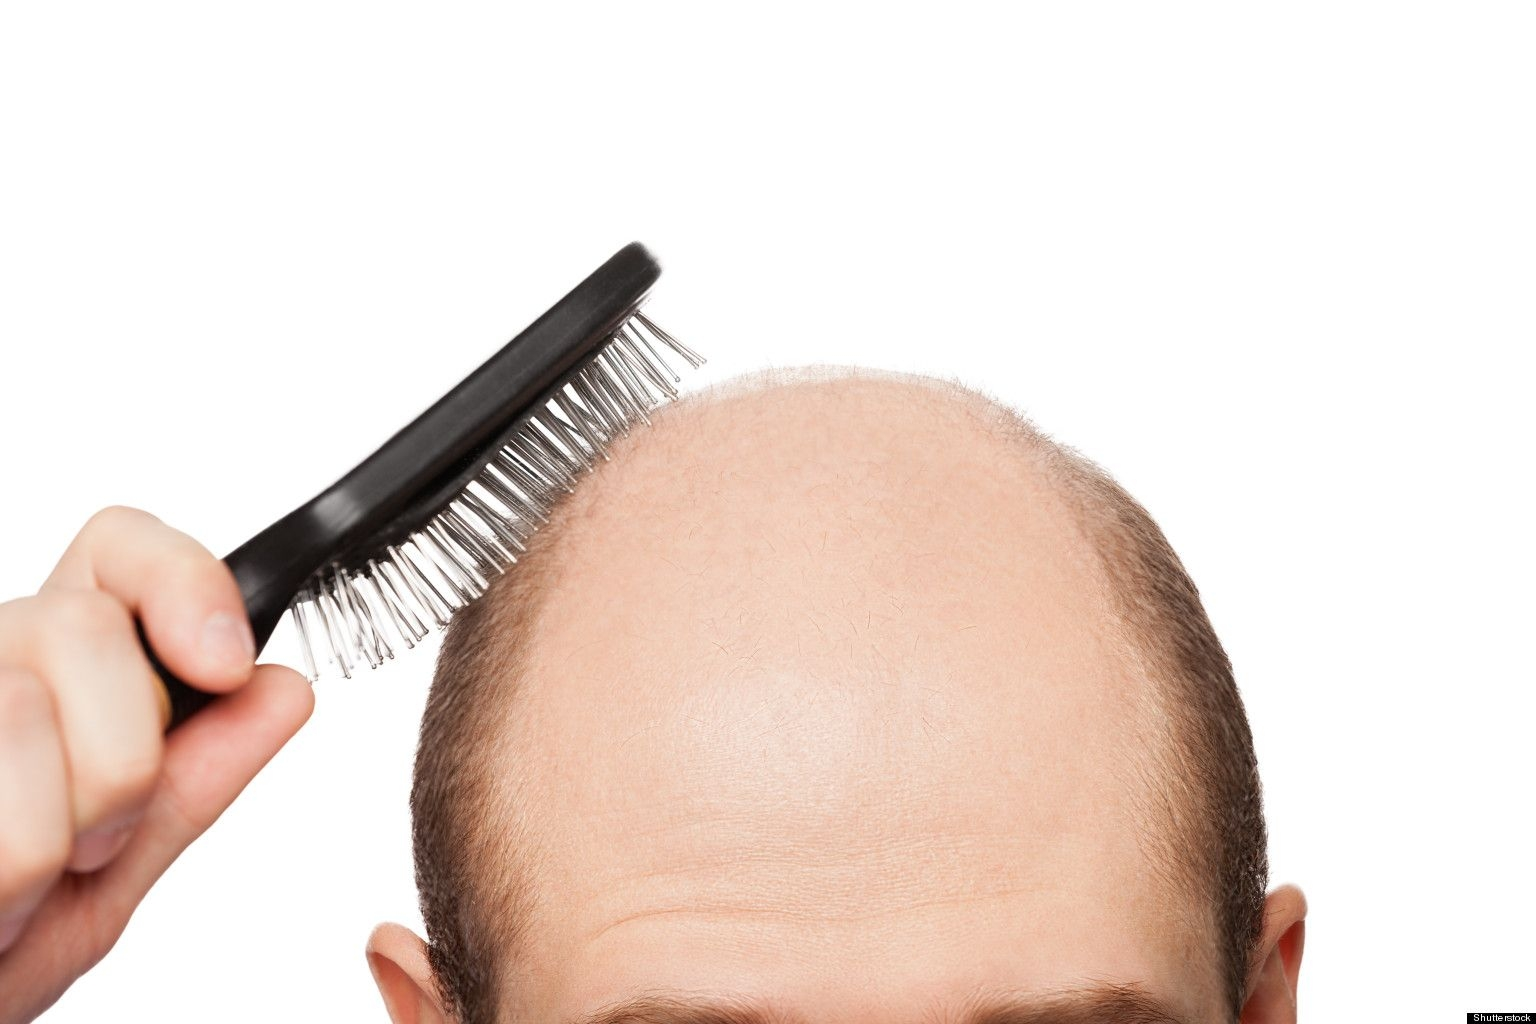 IS HAIR TRANSPLANT an affordable solution?